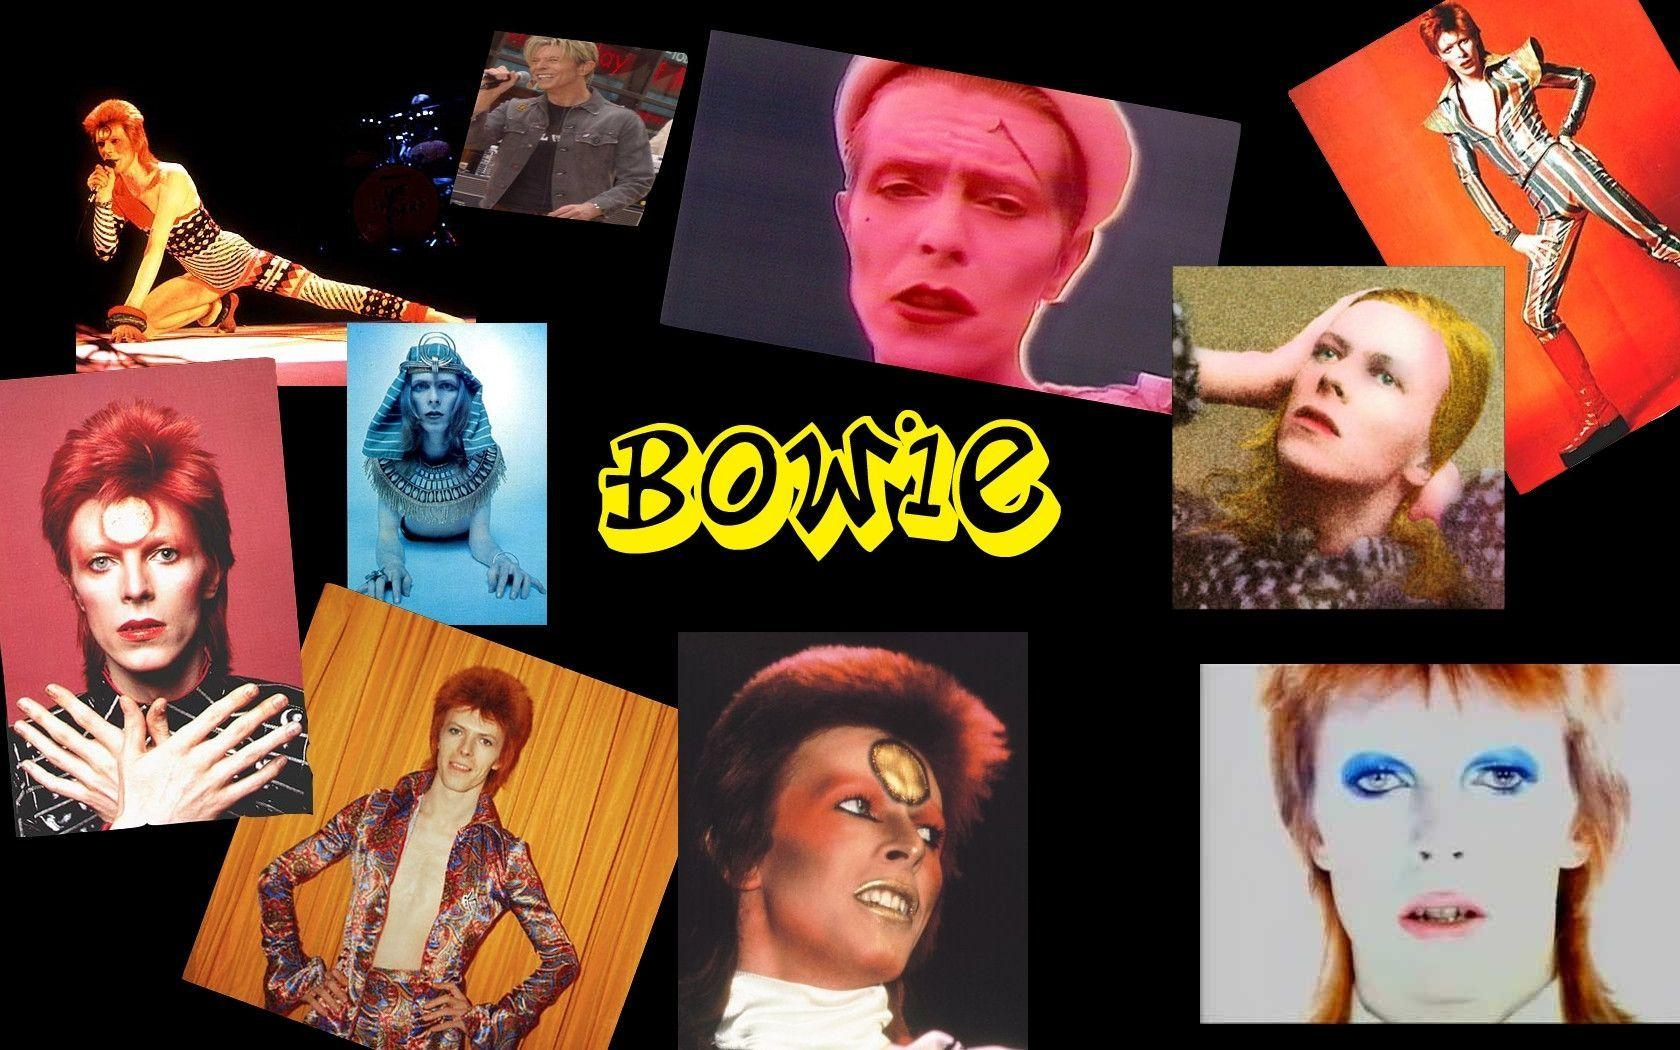 Bowie Wallpaper - David Bowie Wallpaper (13261331) - Fanpop